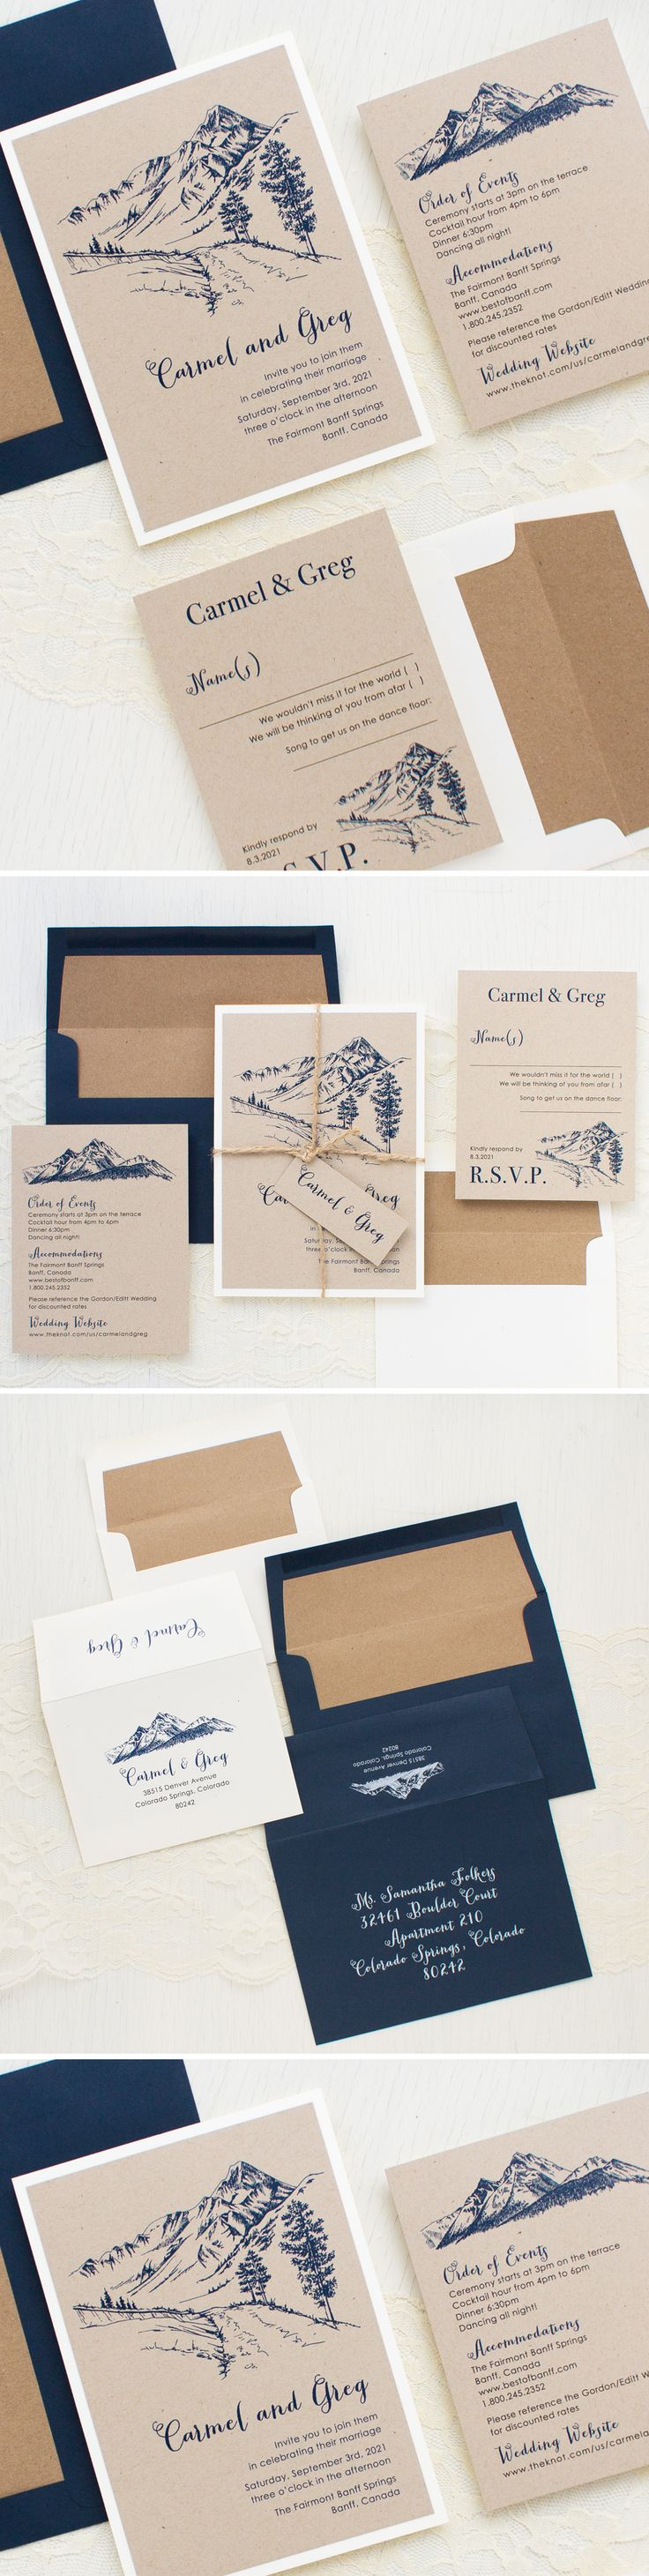 267 Best Wedding Invitations Images On Pinterest Wedding